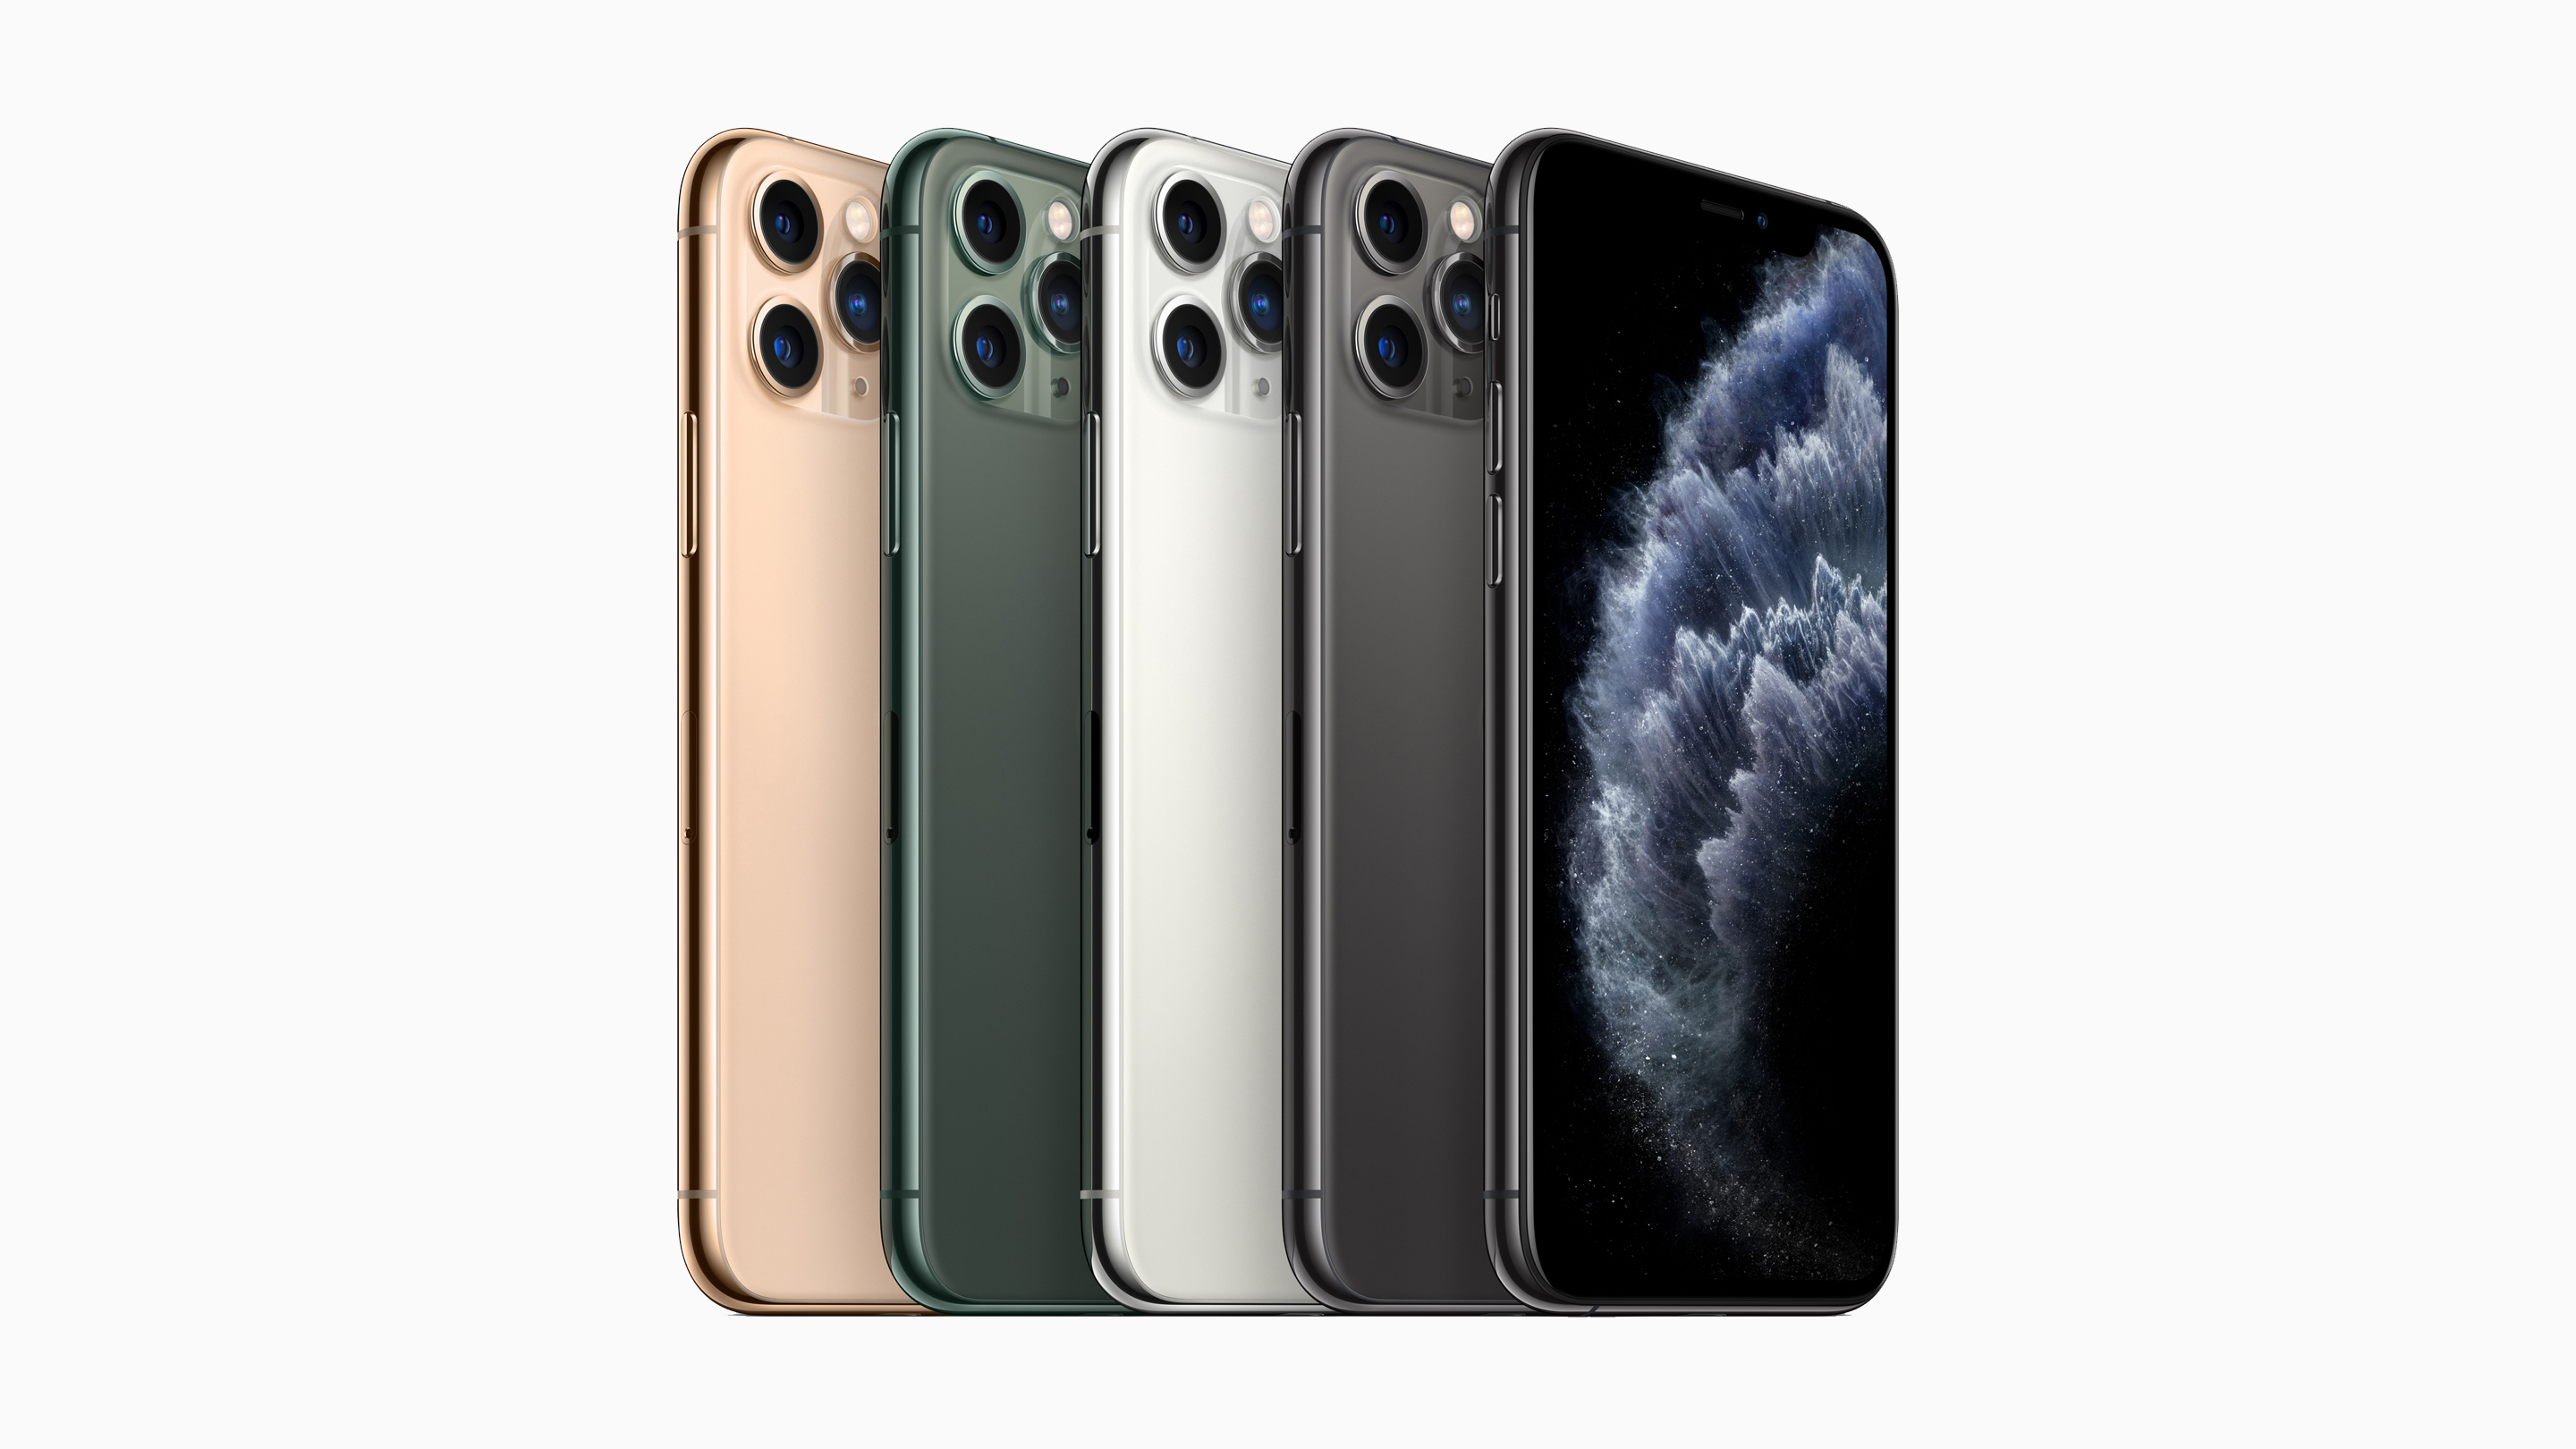 The iPhone 11 Pro Max is the best iPhone in years \u2014 Quartz